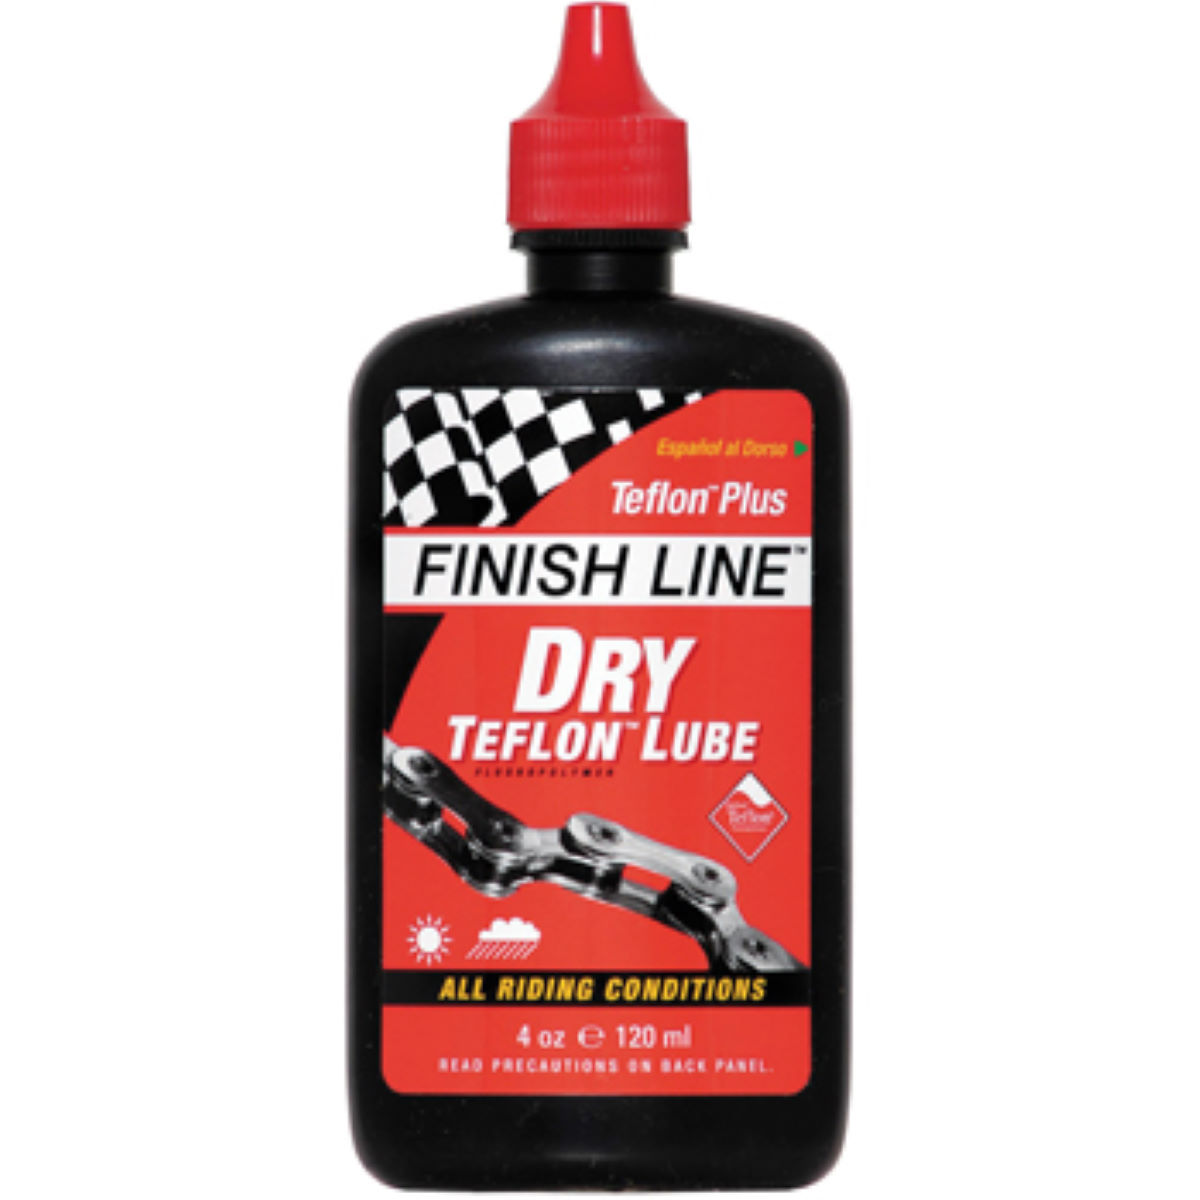 Finish Line Dry Teflon Lubricant 120ml Bottle